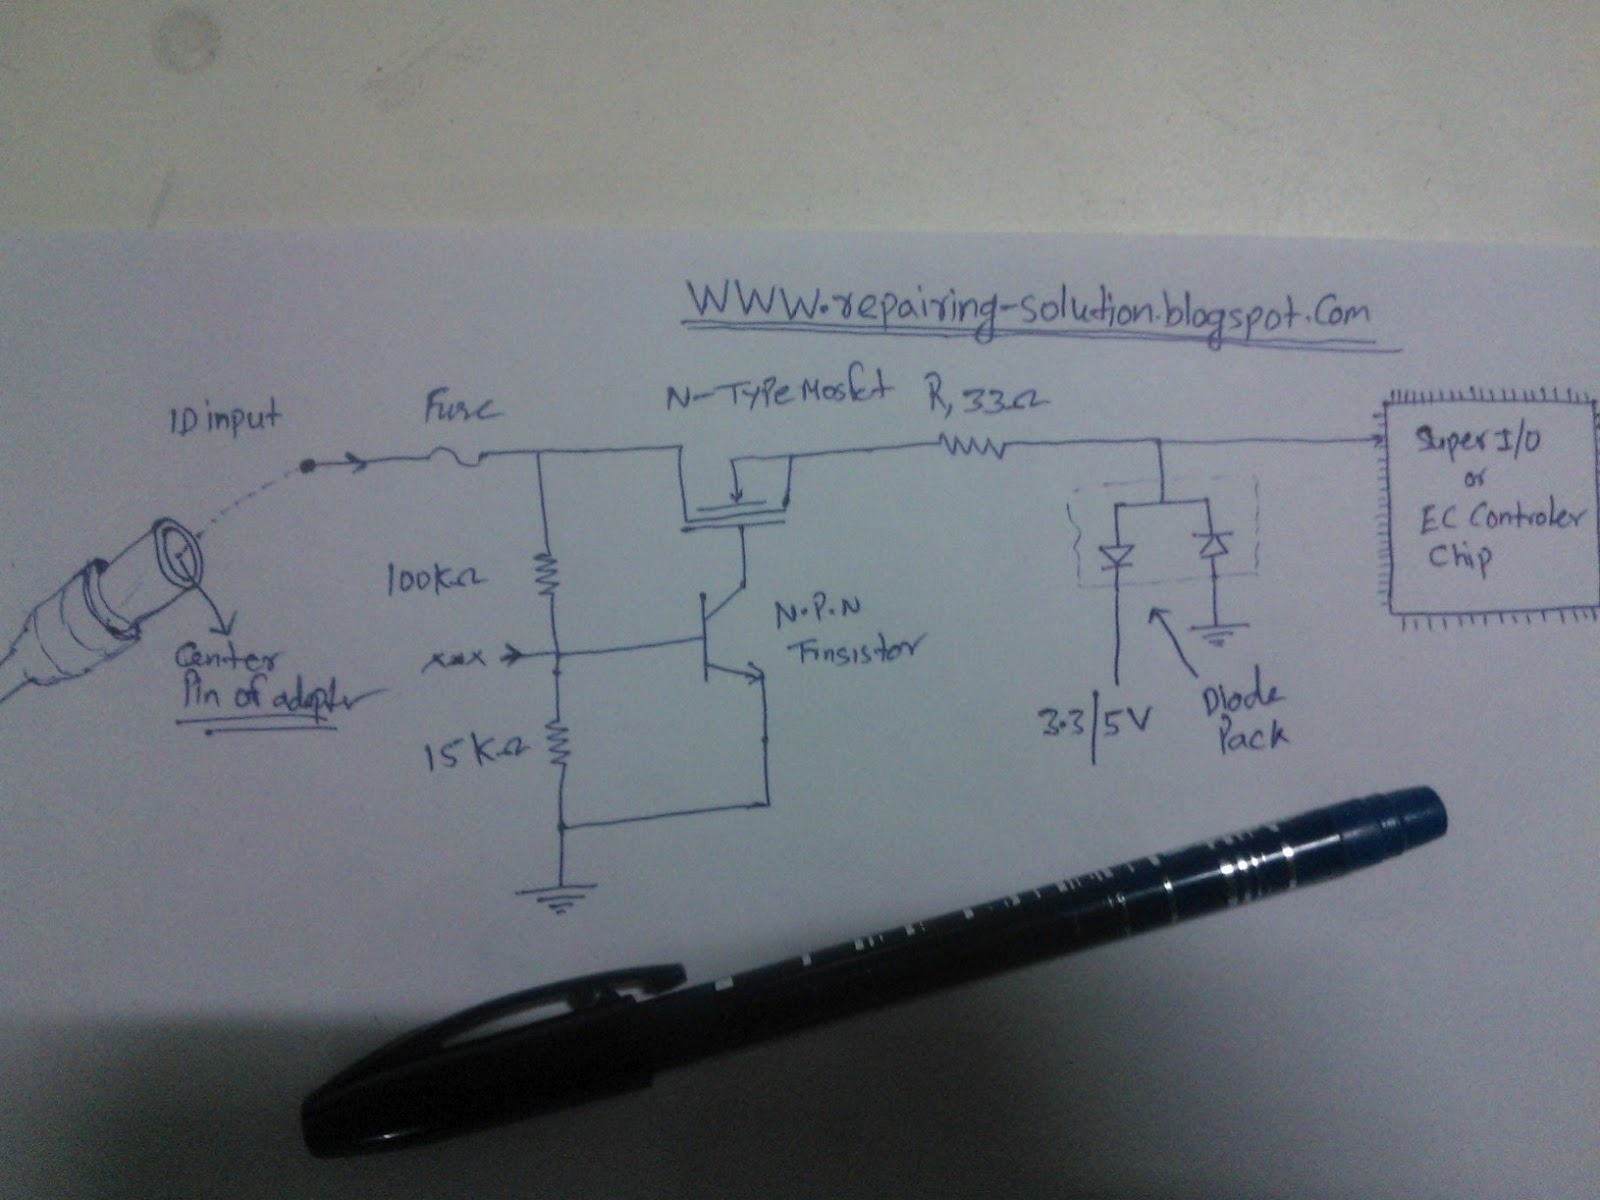 S Video To Component Cable Wiring Diagram All Laptop Repairing Solution How Fix If Dell Connector Pinout Sewer Camera